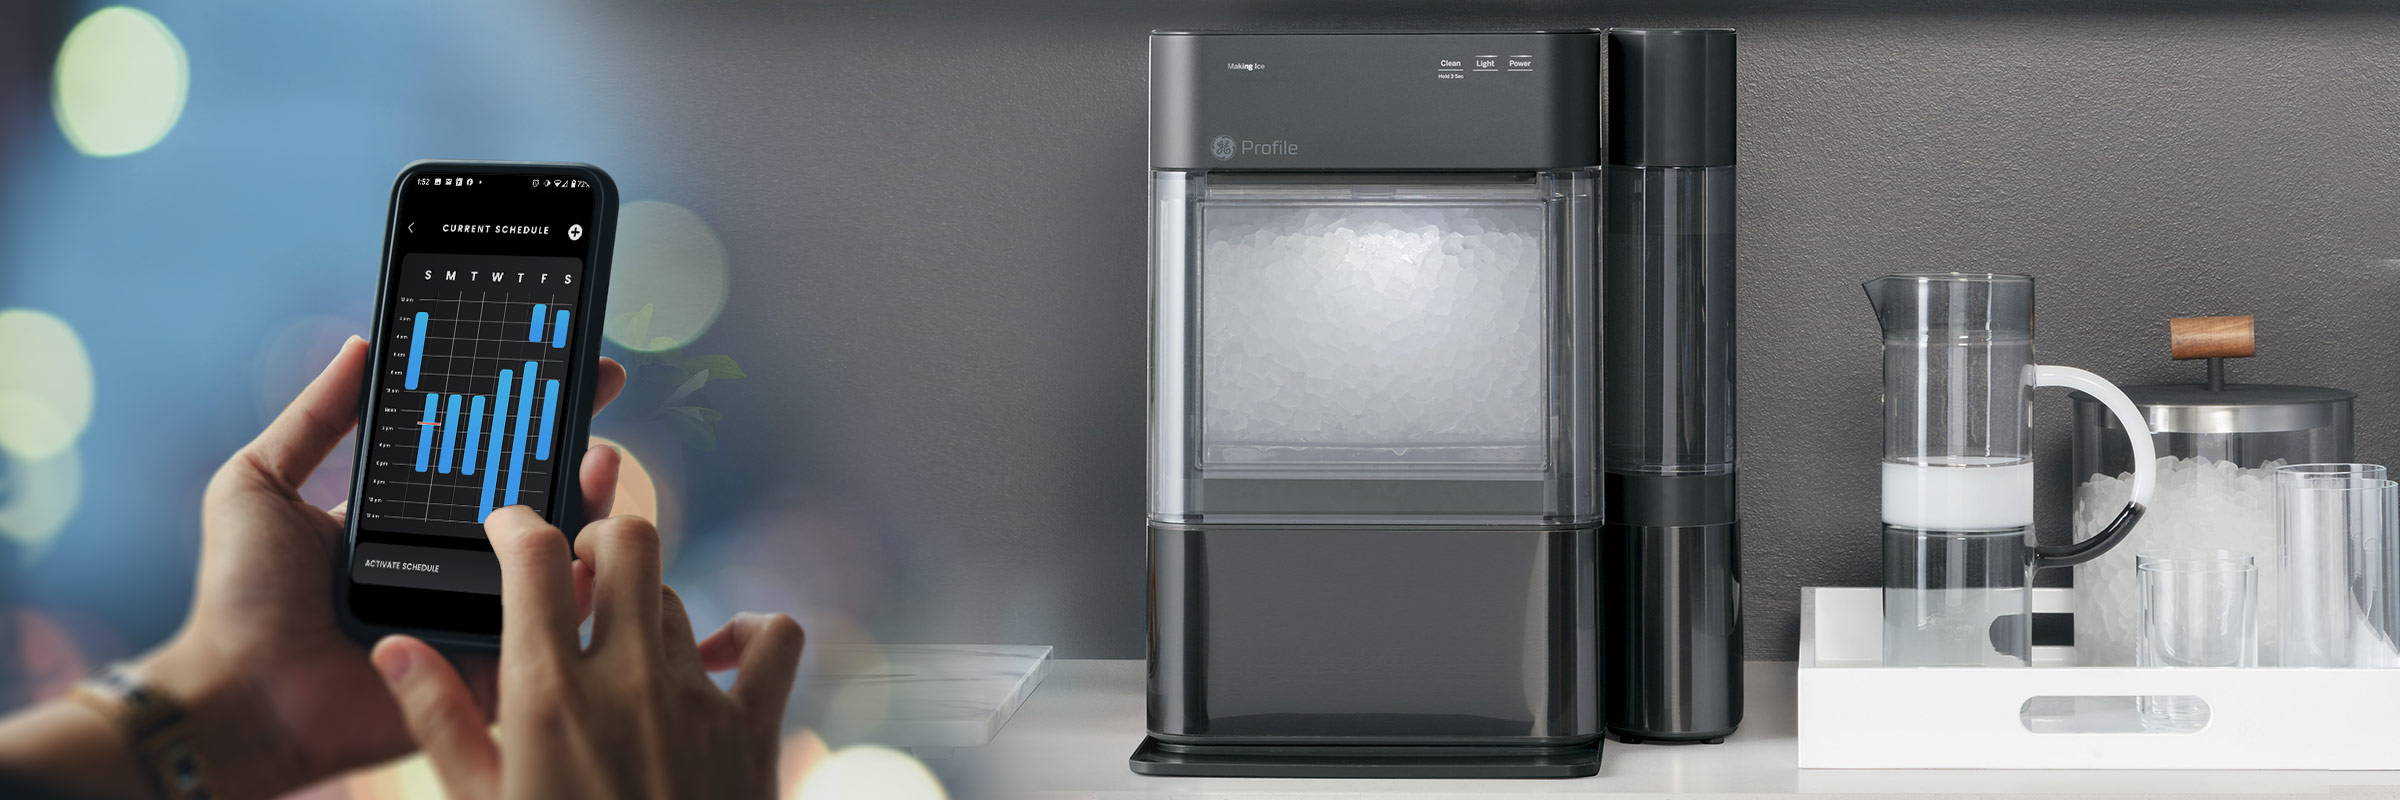 GE PROFILE? OPAL? NUGGET ICE MAKER - on counter while owner edts the ice making schedule from the smartphone app.